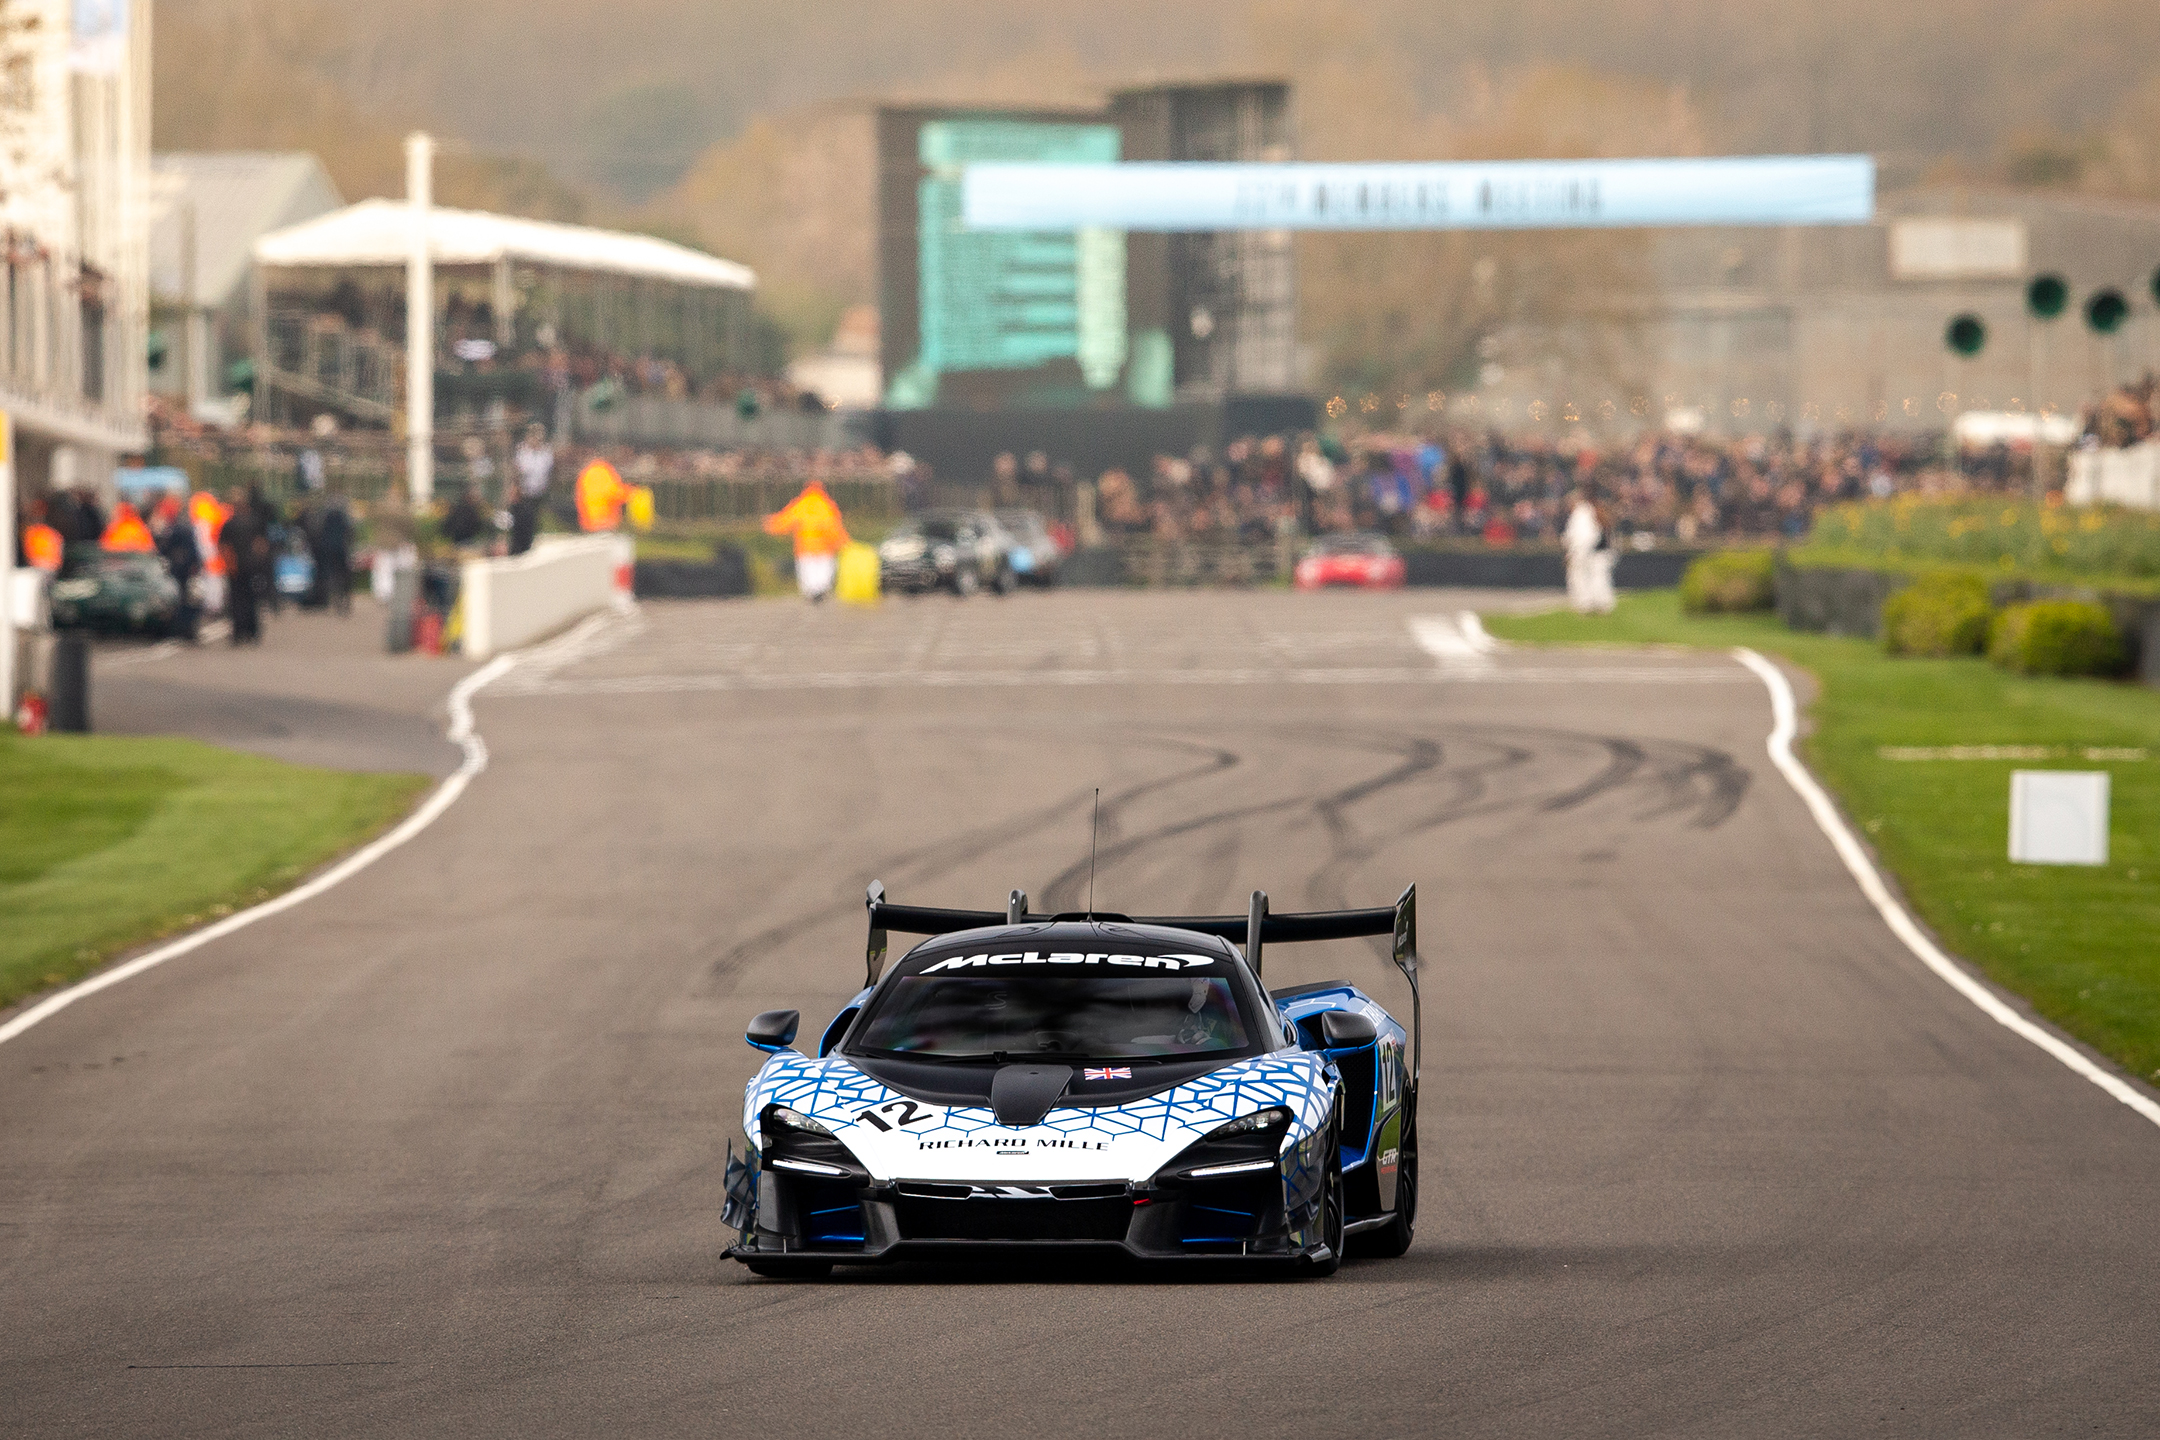 McLaren Senna GTR - Goodwood Motor Circuit - parade 77MM - 2019 - front track - photo via McLaren Automotive